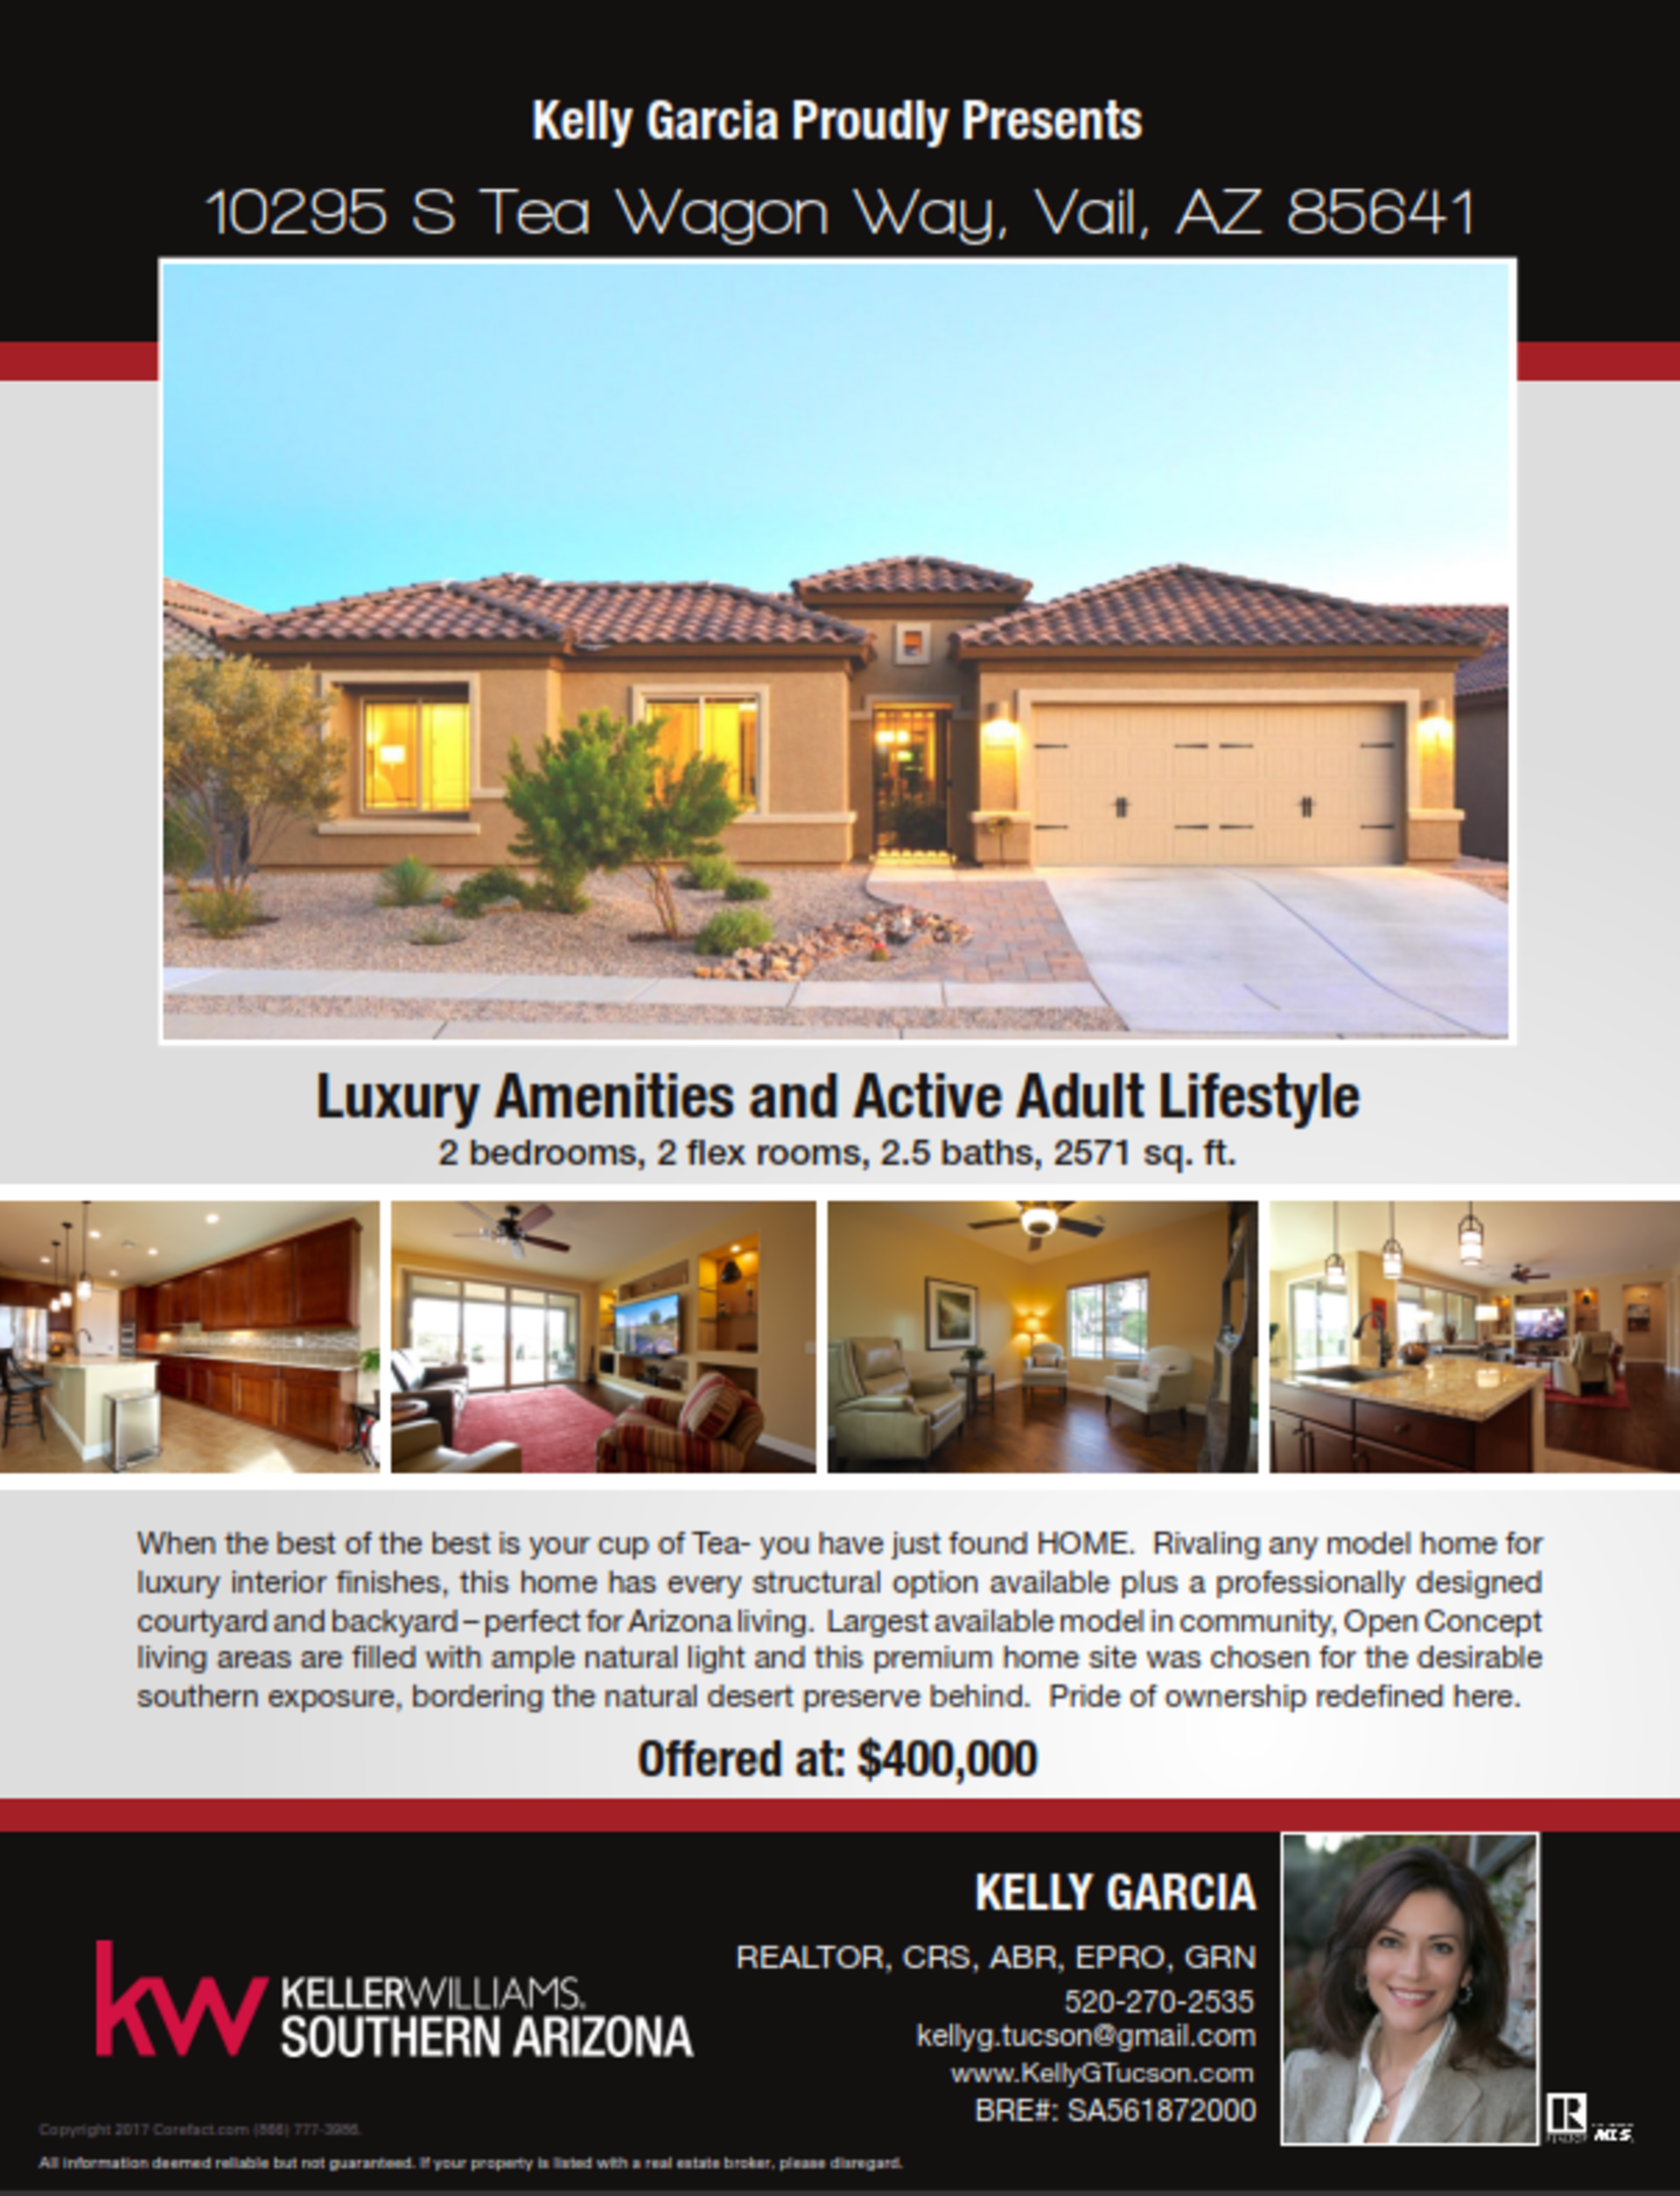 Tucson Active Adult Lifestyle in Vail Arizona